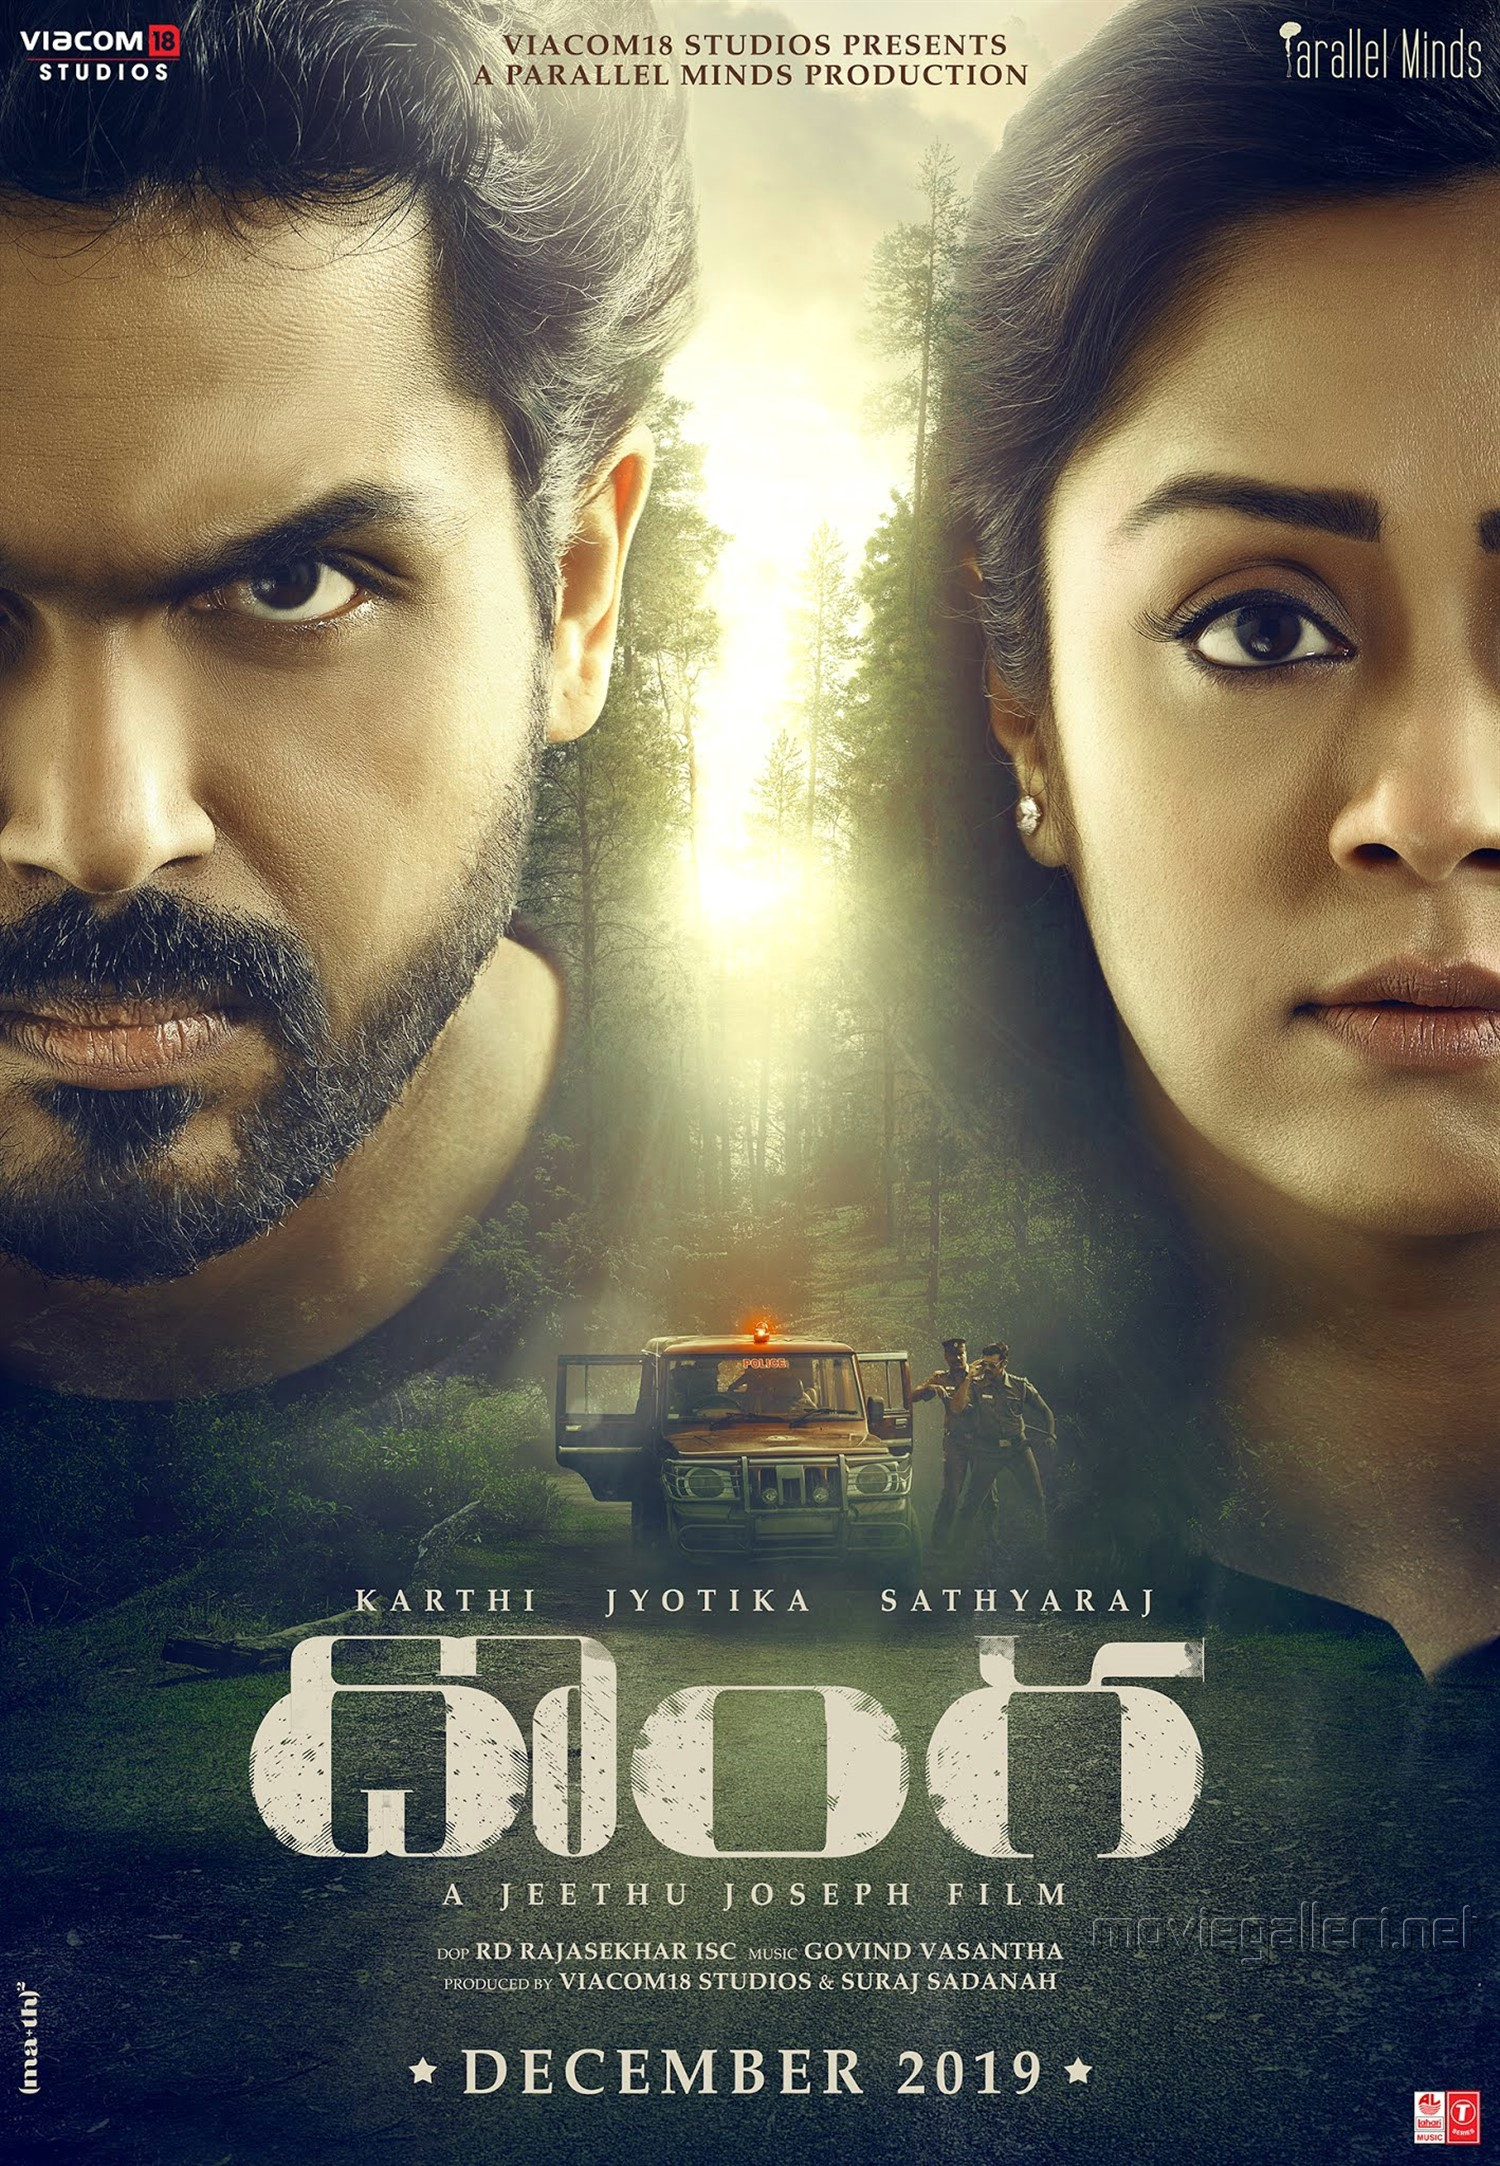 Karthi Jyothika Donga Movie First Look Poster HD